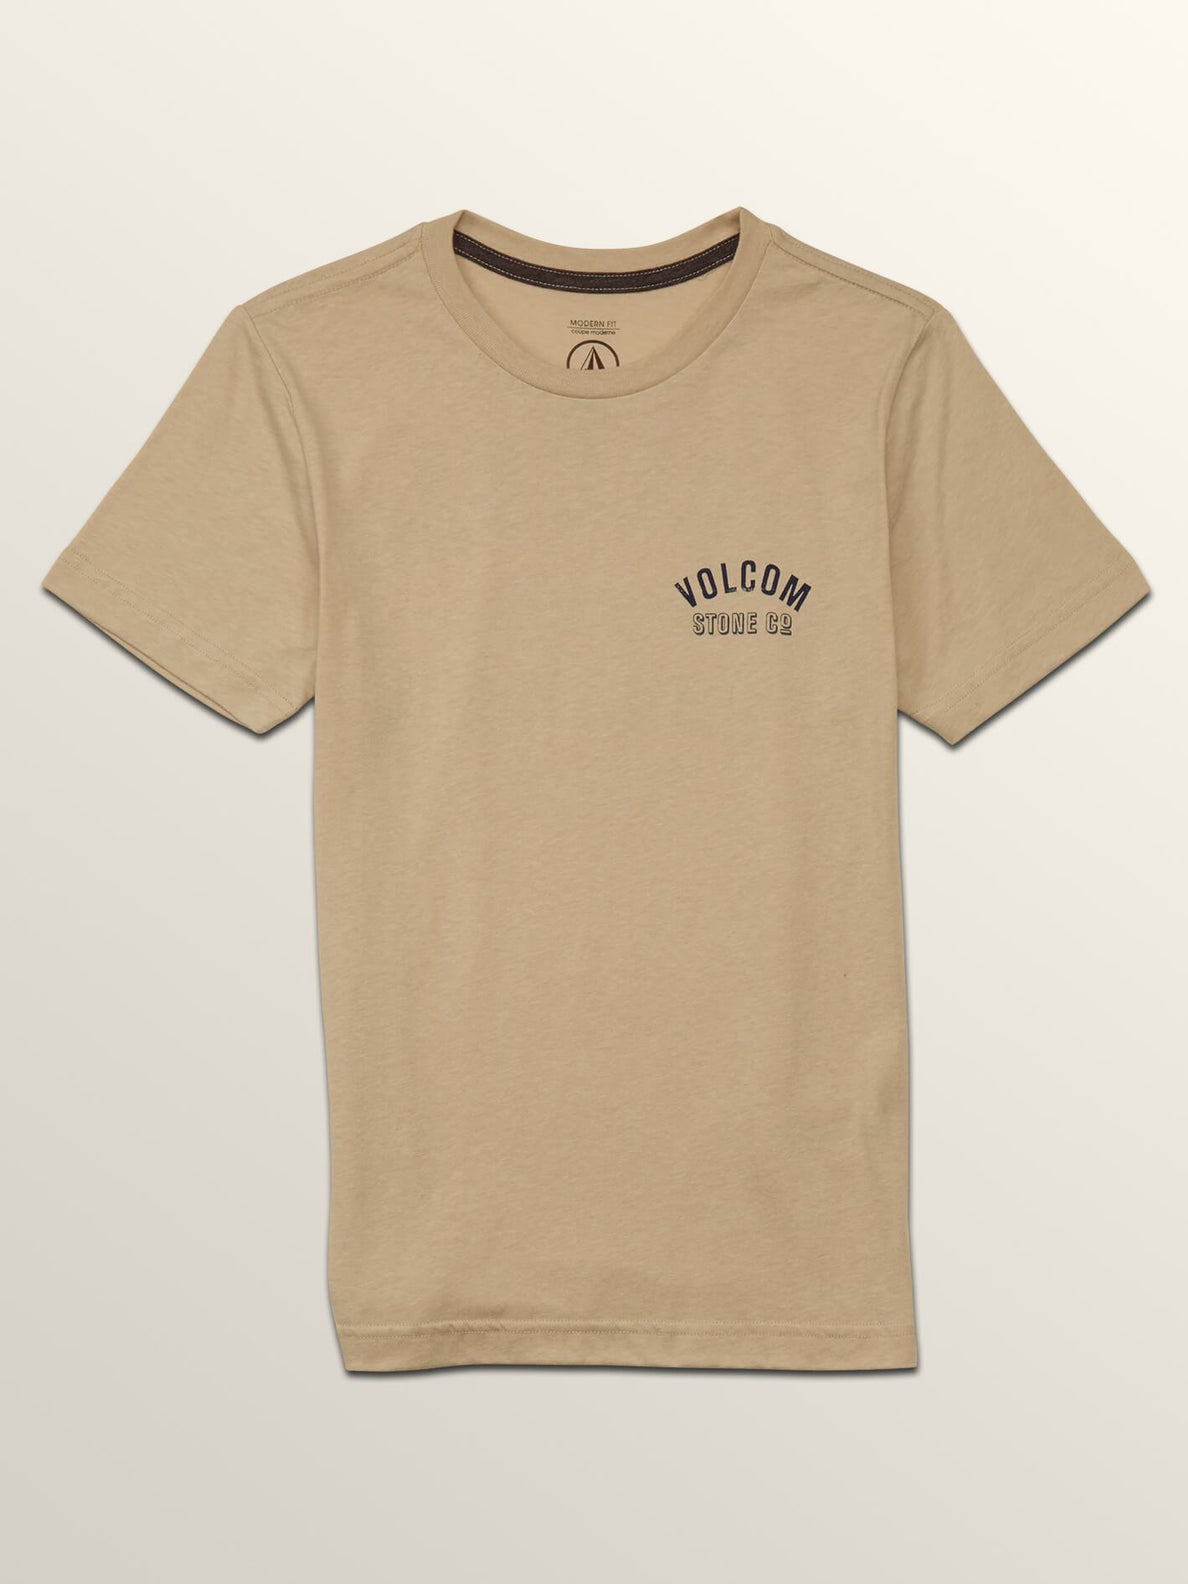 Big Boys Safe Bet Short Sleeve Tee In Oatmeal, Front View